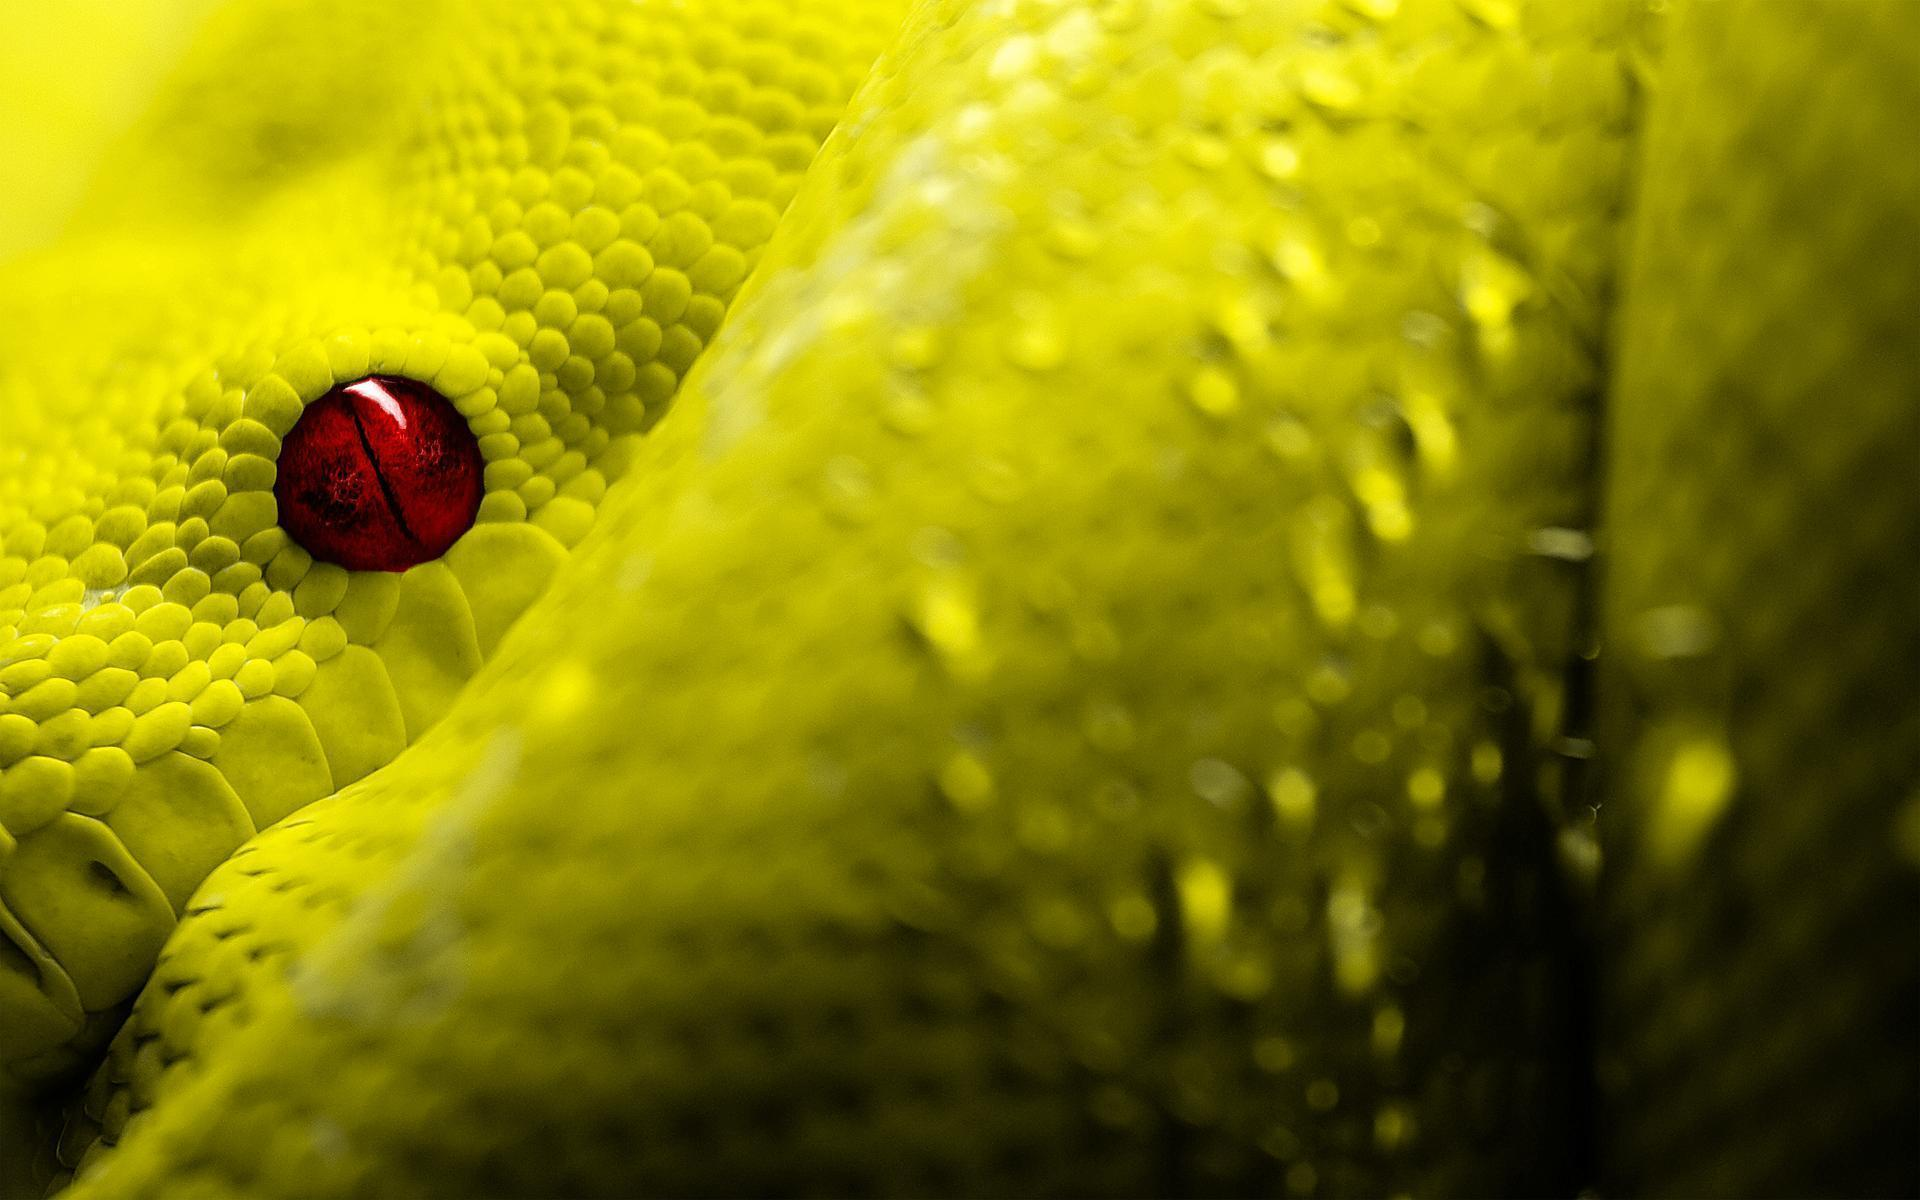 22 reptile hd wallpapers - photo #29